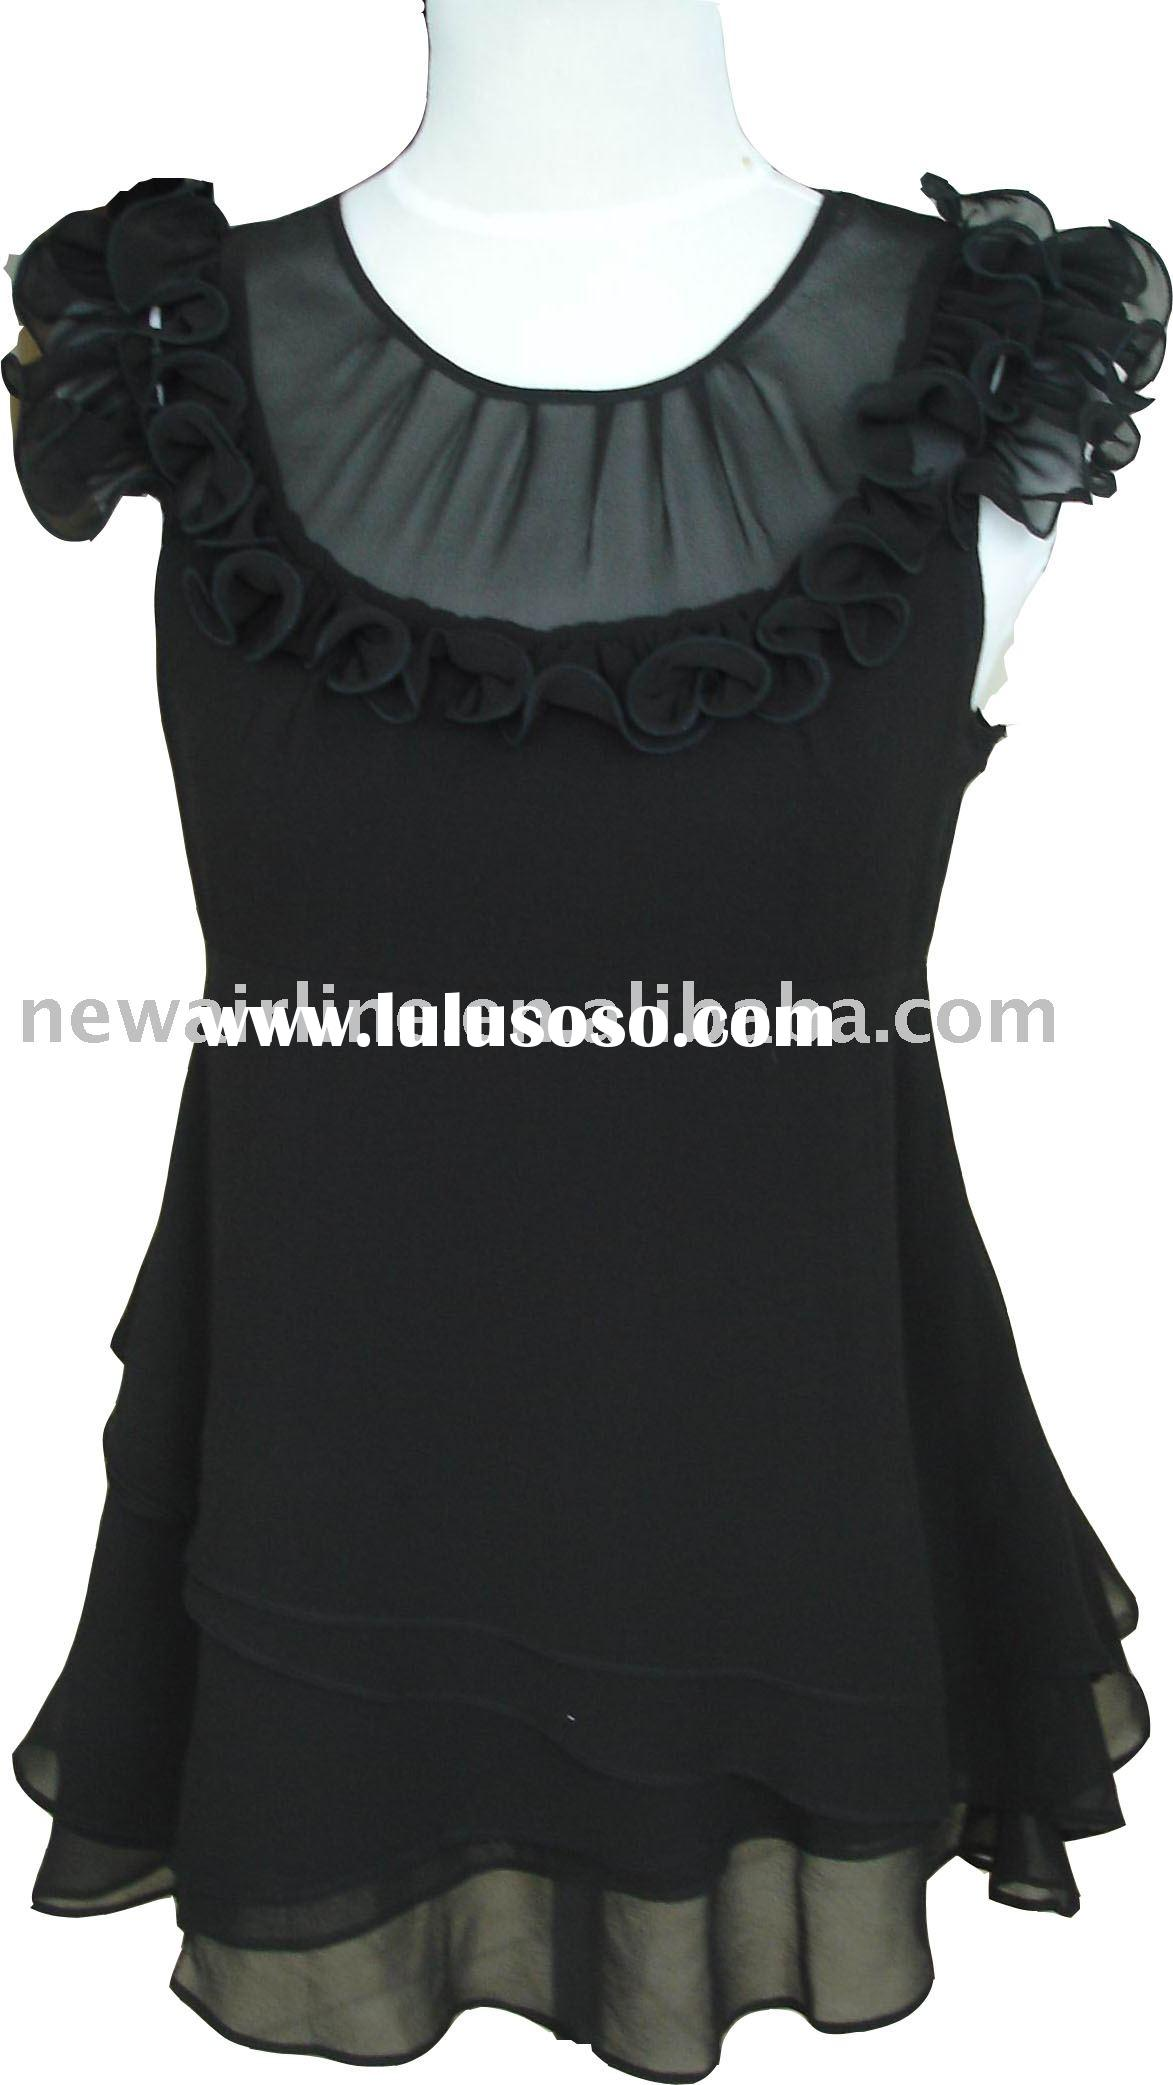 Japan style top